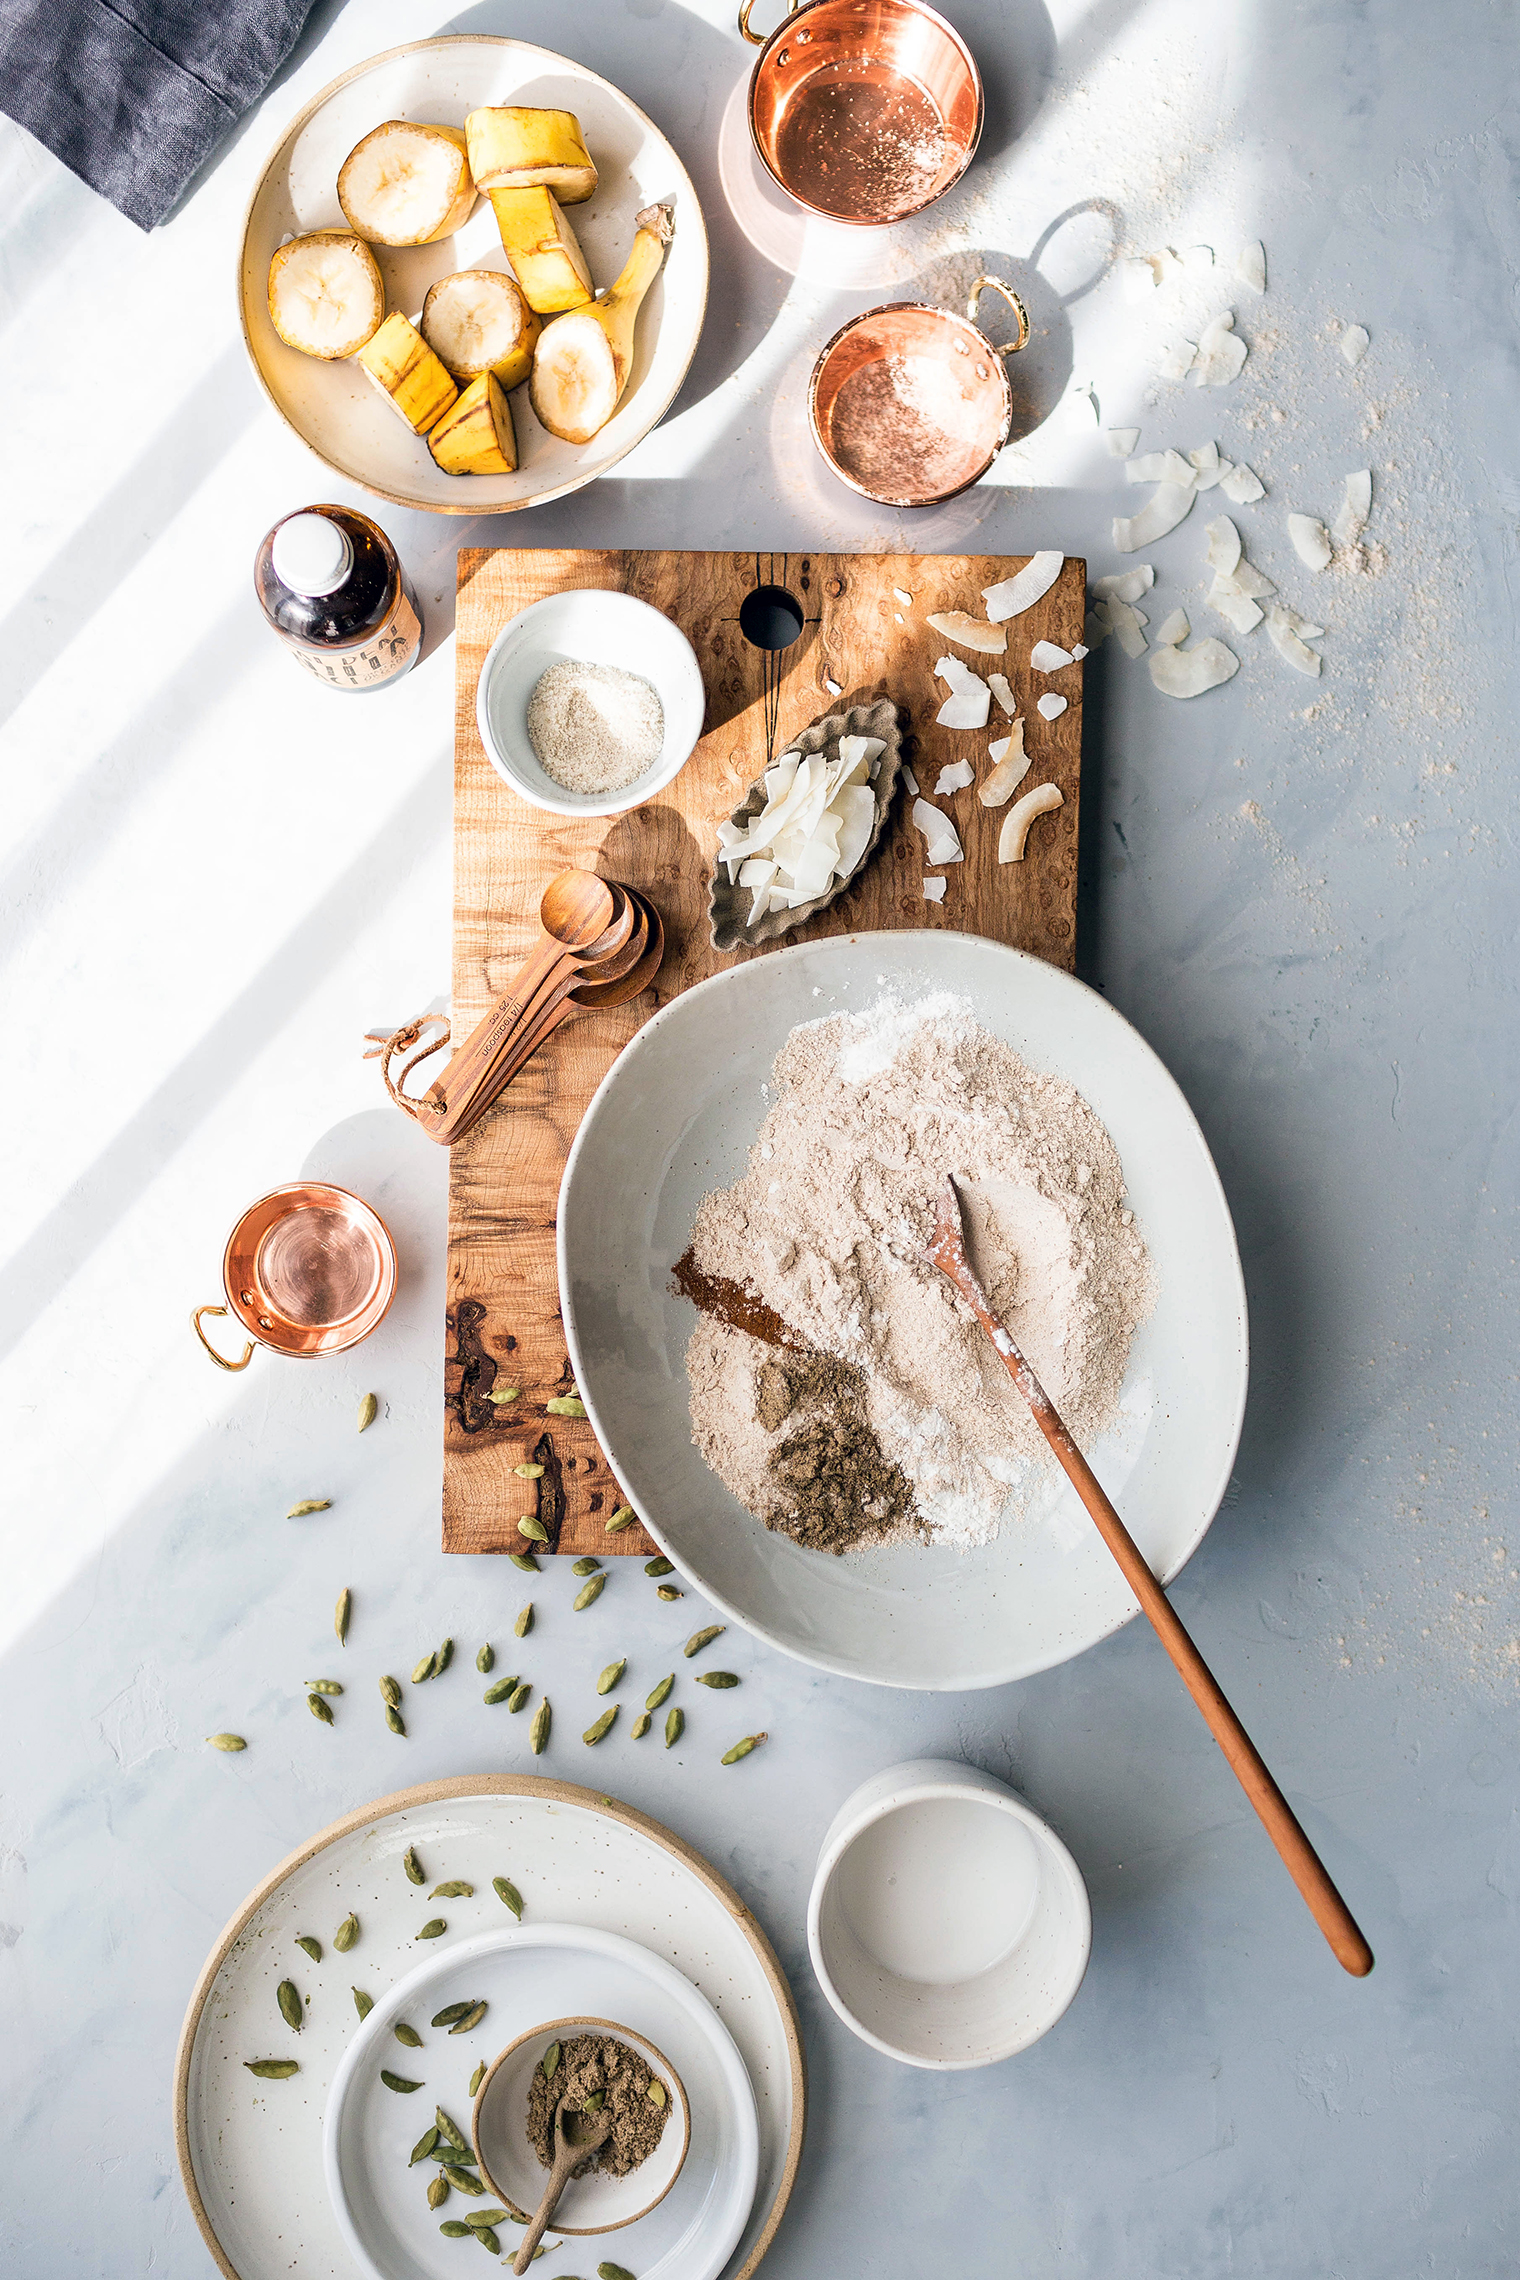 ingredients for healthy banana pancakes laid out on countertop